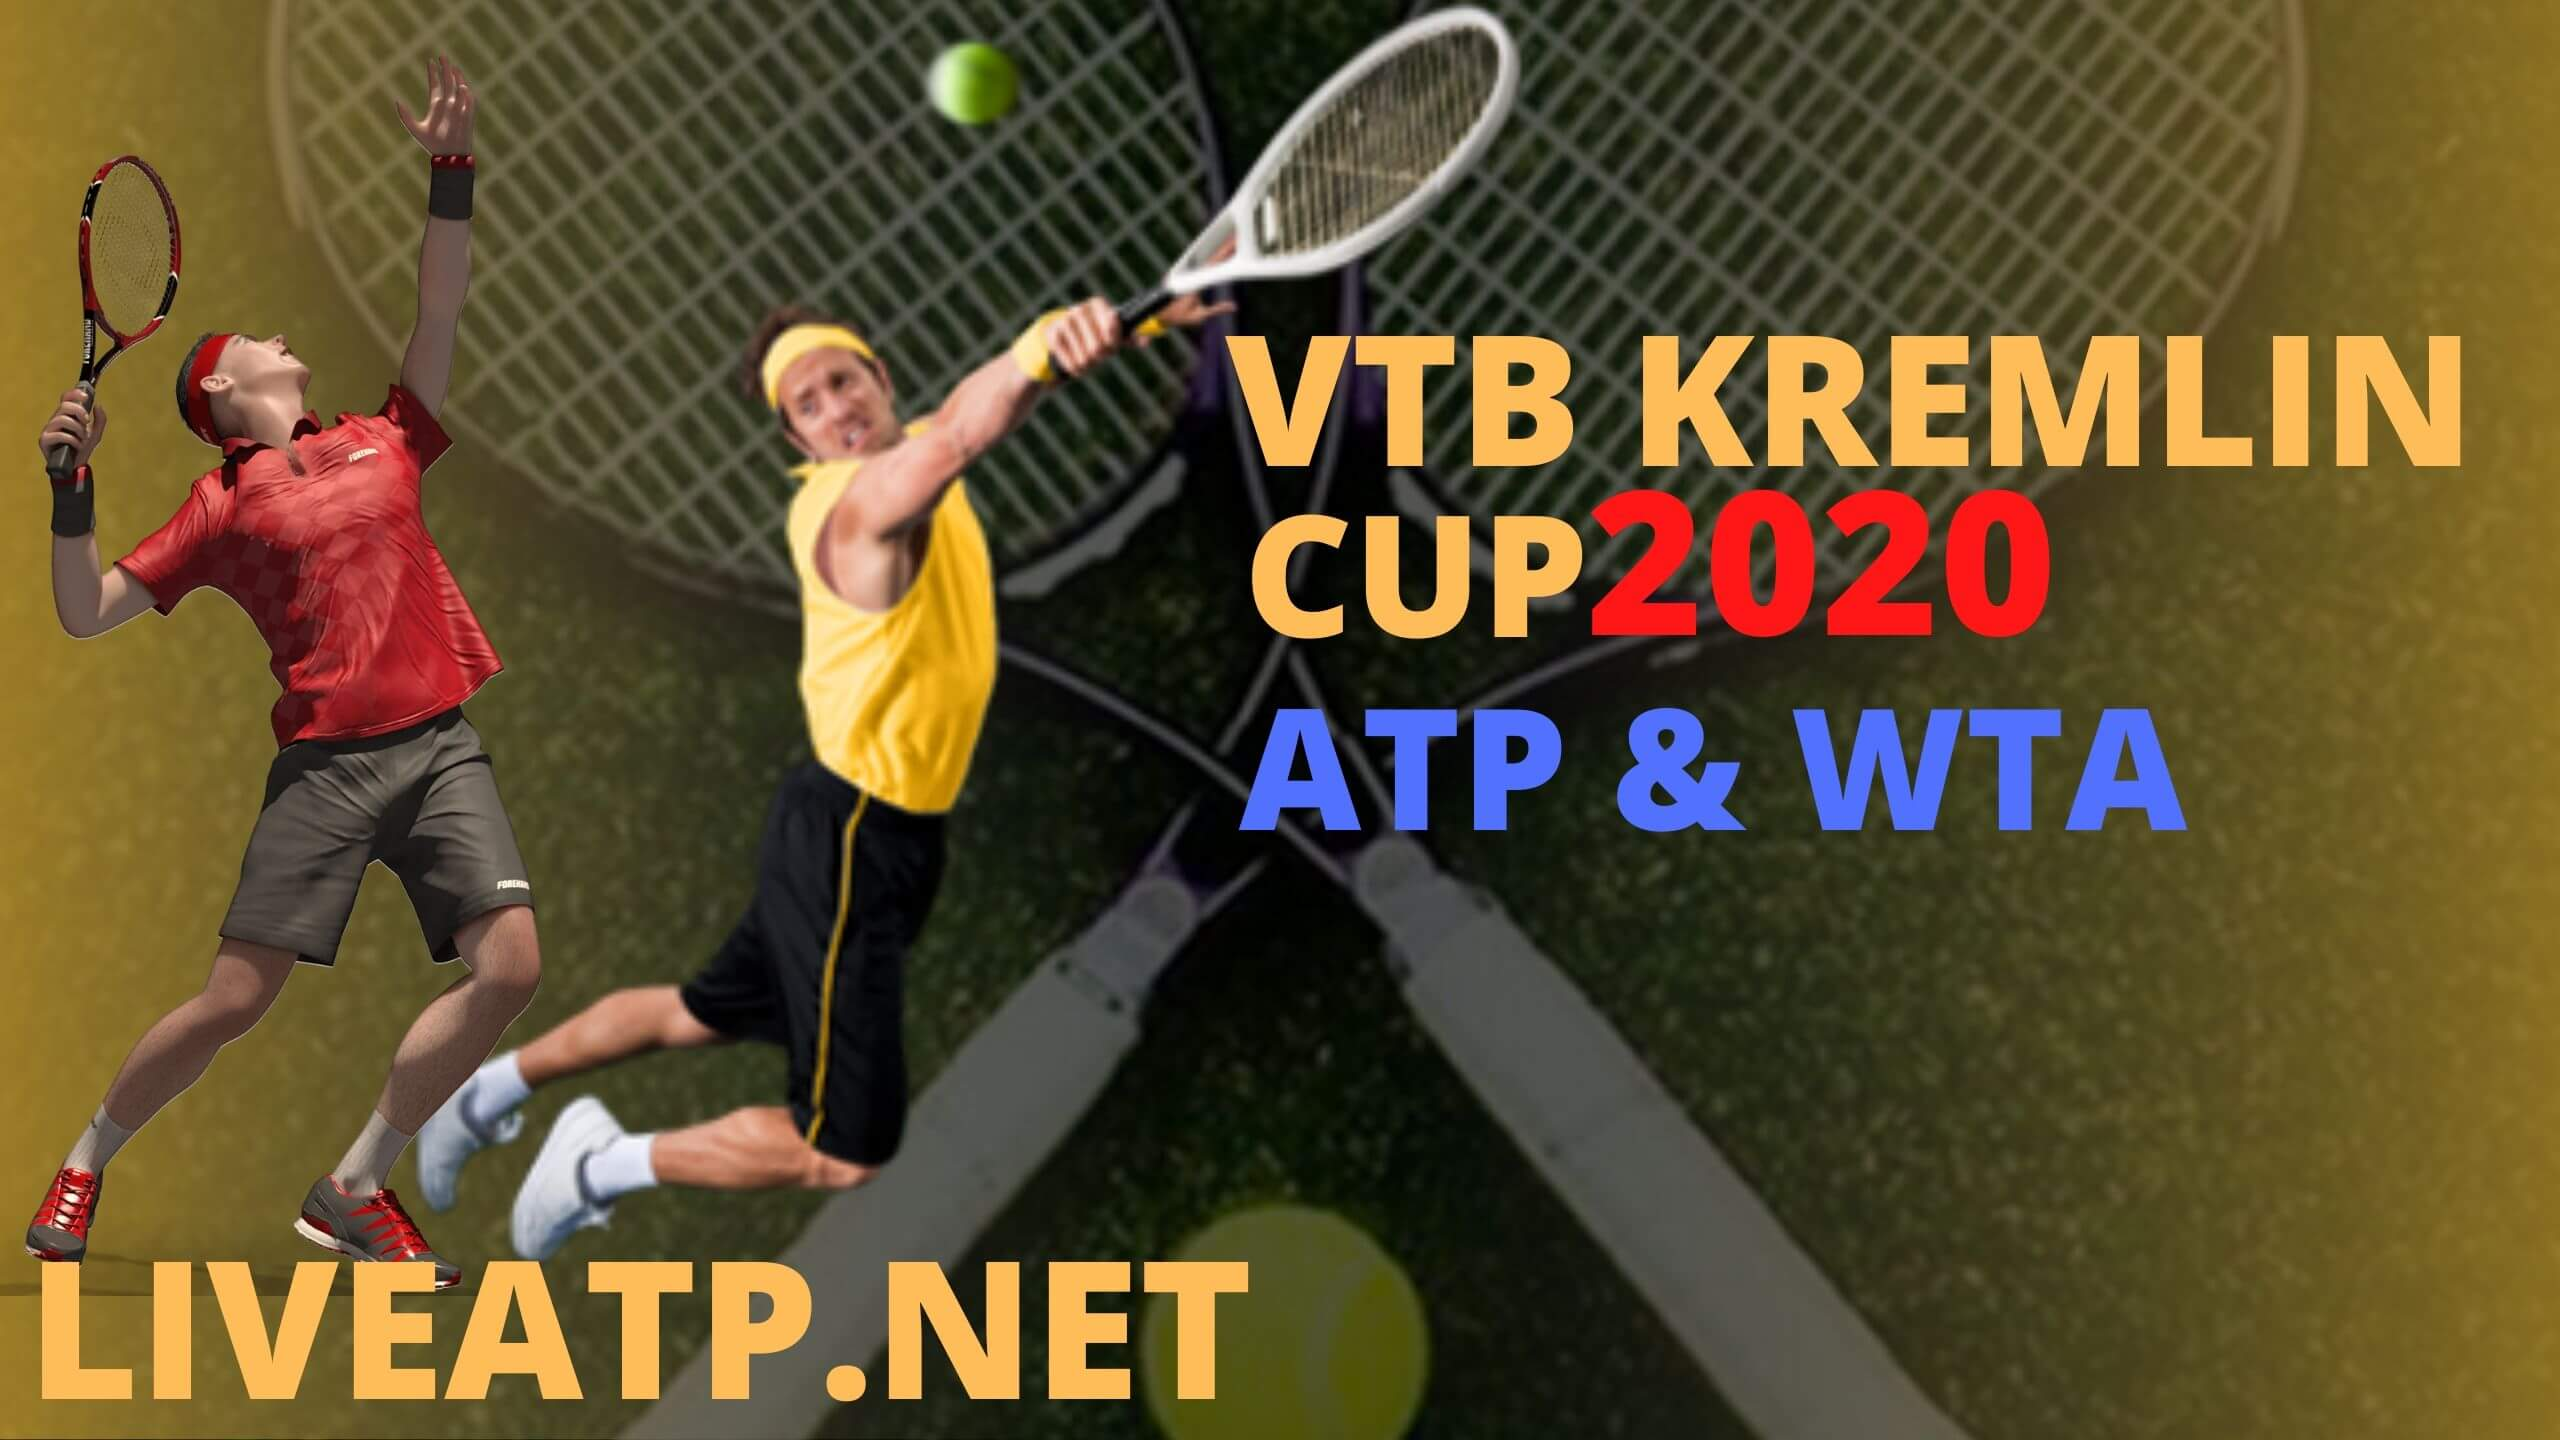 VTB Kremlin Cup Live Stream 2020 | Semi Final